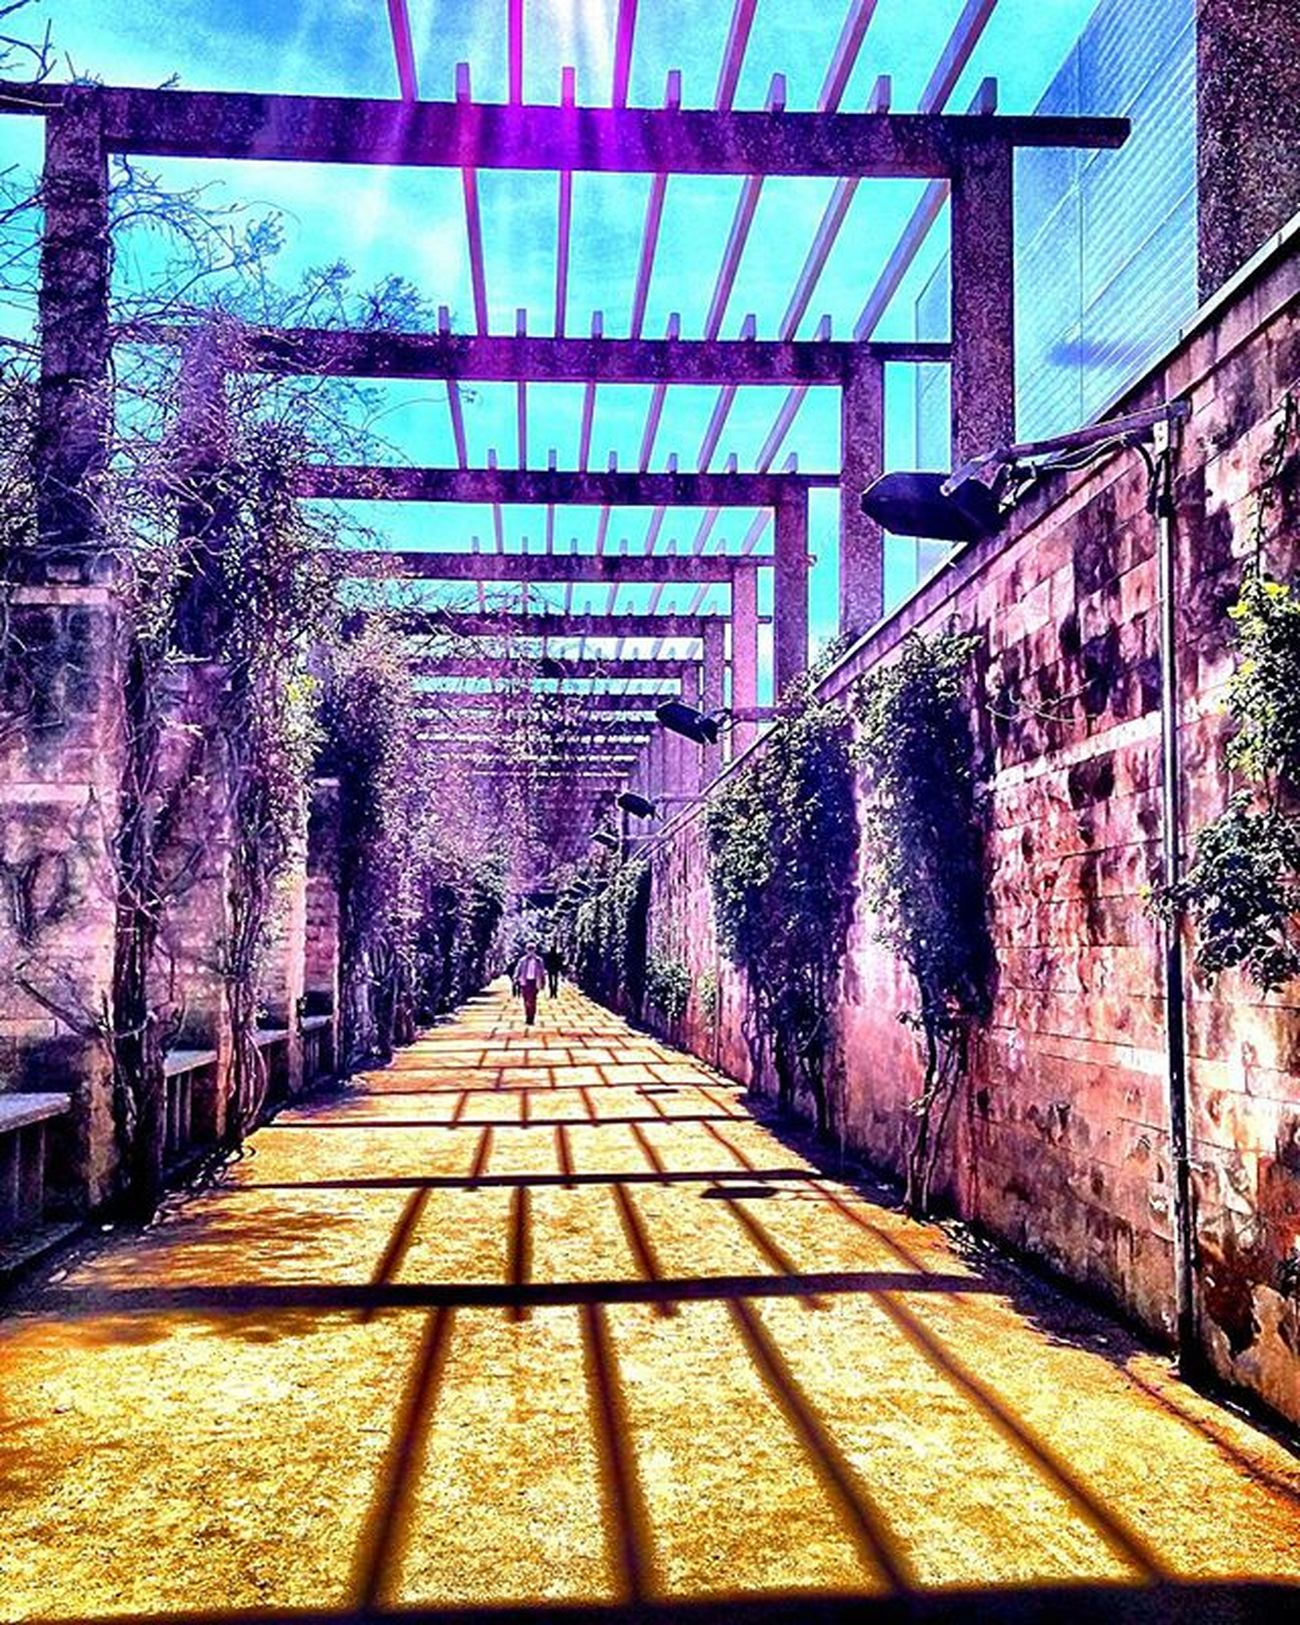 Parcdejoanmiro Parque  Parc Puisto Park Tunnel Tunel Tunneli Barcelona Bcndreamers Bcnexploradores Thebarcelonist Igersbarcelona Igerscatalunya HDR Hdr_lovers Hdr_pics Hdr_spain Kings_hdr Tv_hdr Fotofanatics_hdr BEST_HDR_ARCHIVE